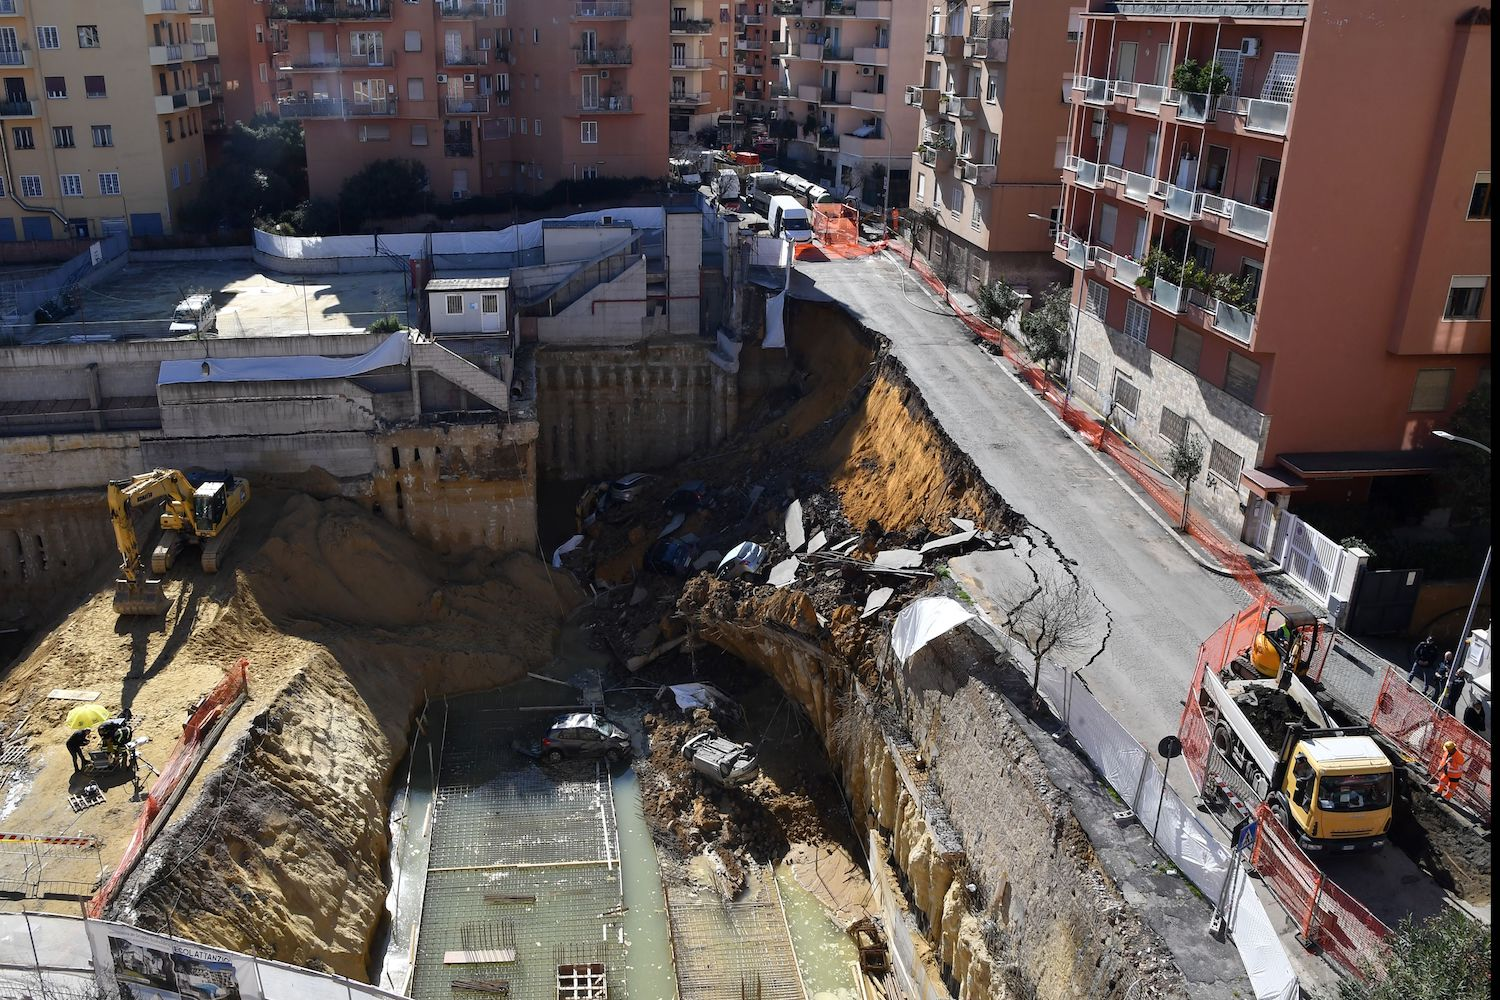 TOPSHOT - The picture taken on February 15, 2018 in the street of Balduina's district in Rome shows a general view of a huge sinkhole that opened up the day before in Rome, swallowing six cars. No casualties were reported. About 22 families were evacuated by firefighters following the collapse. The cause of the sinkhole is still under investigation.  / AFP PHOTO / TIZIANA FABI        (Photo credit should read TIZIANA FABI/AFP/Getty Images)